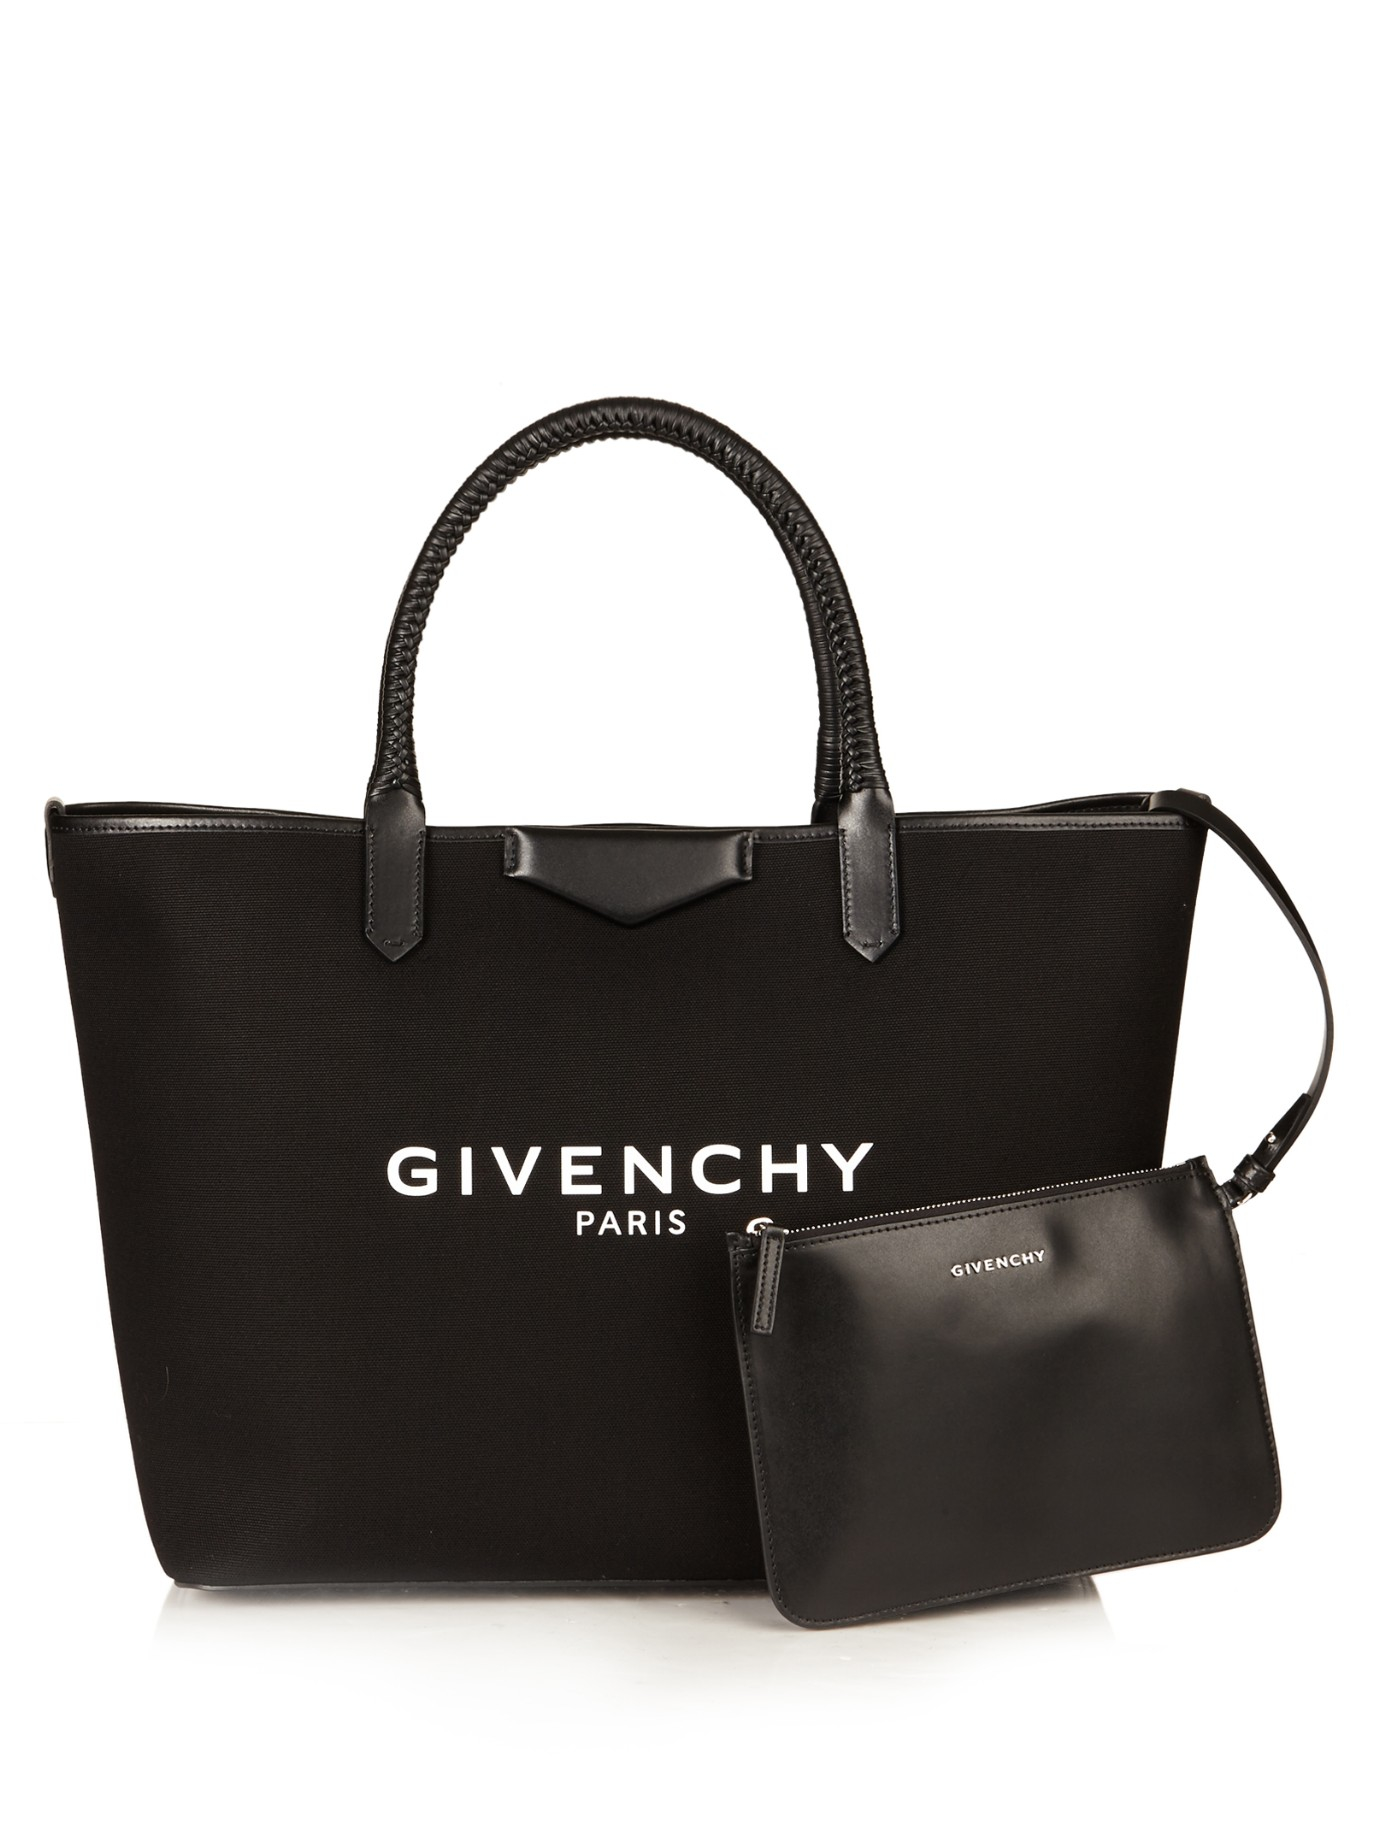 Givenchy Antigona Large Canvas Tote in Black | Lyst